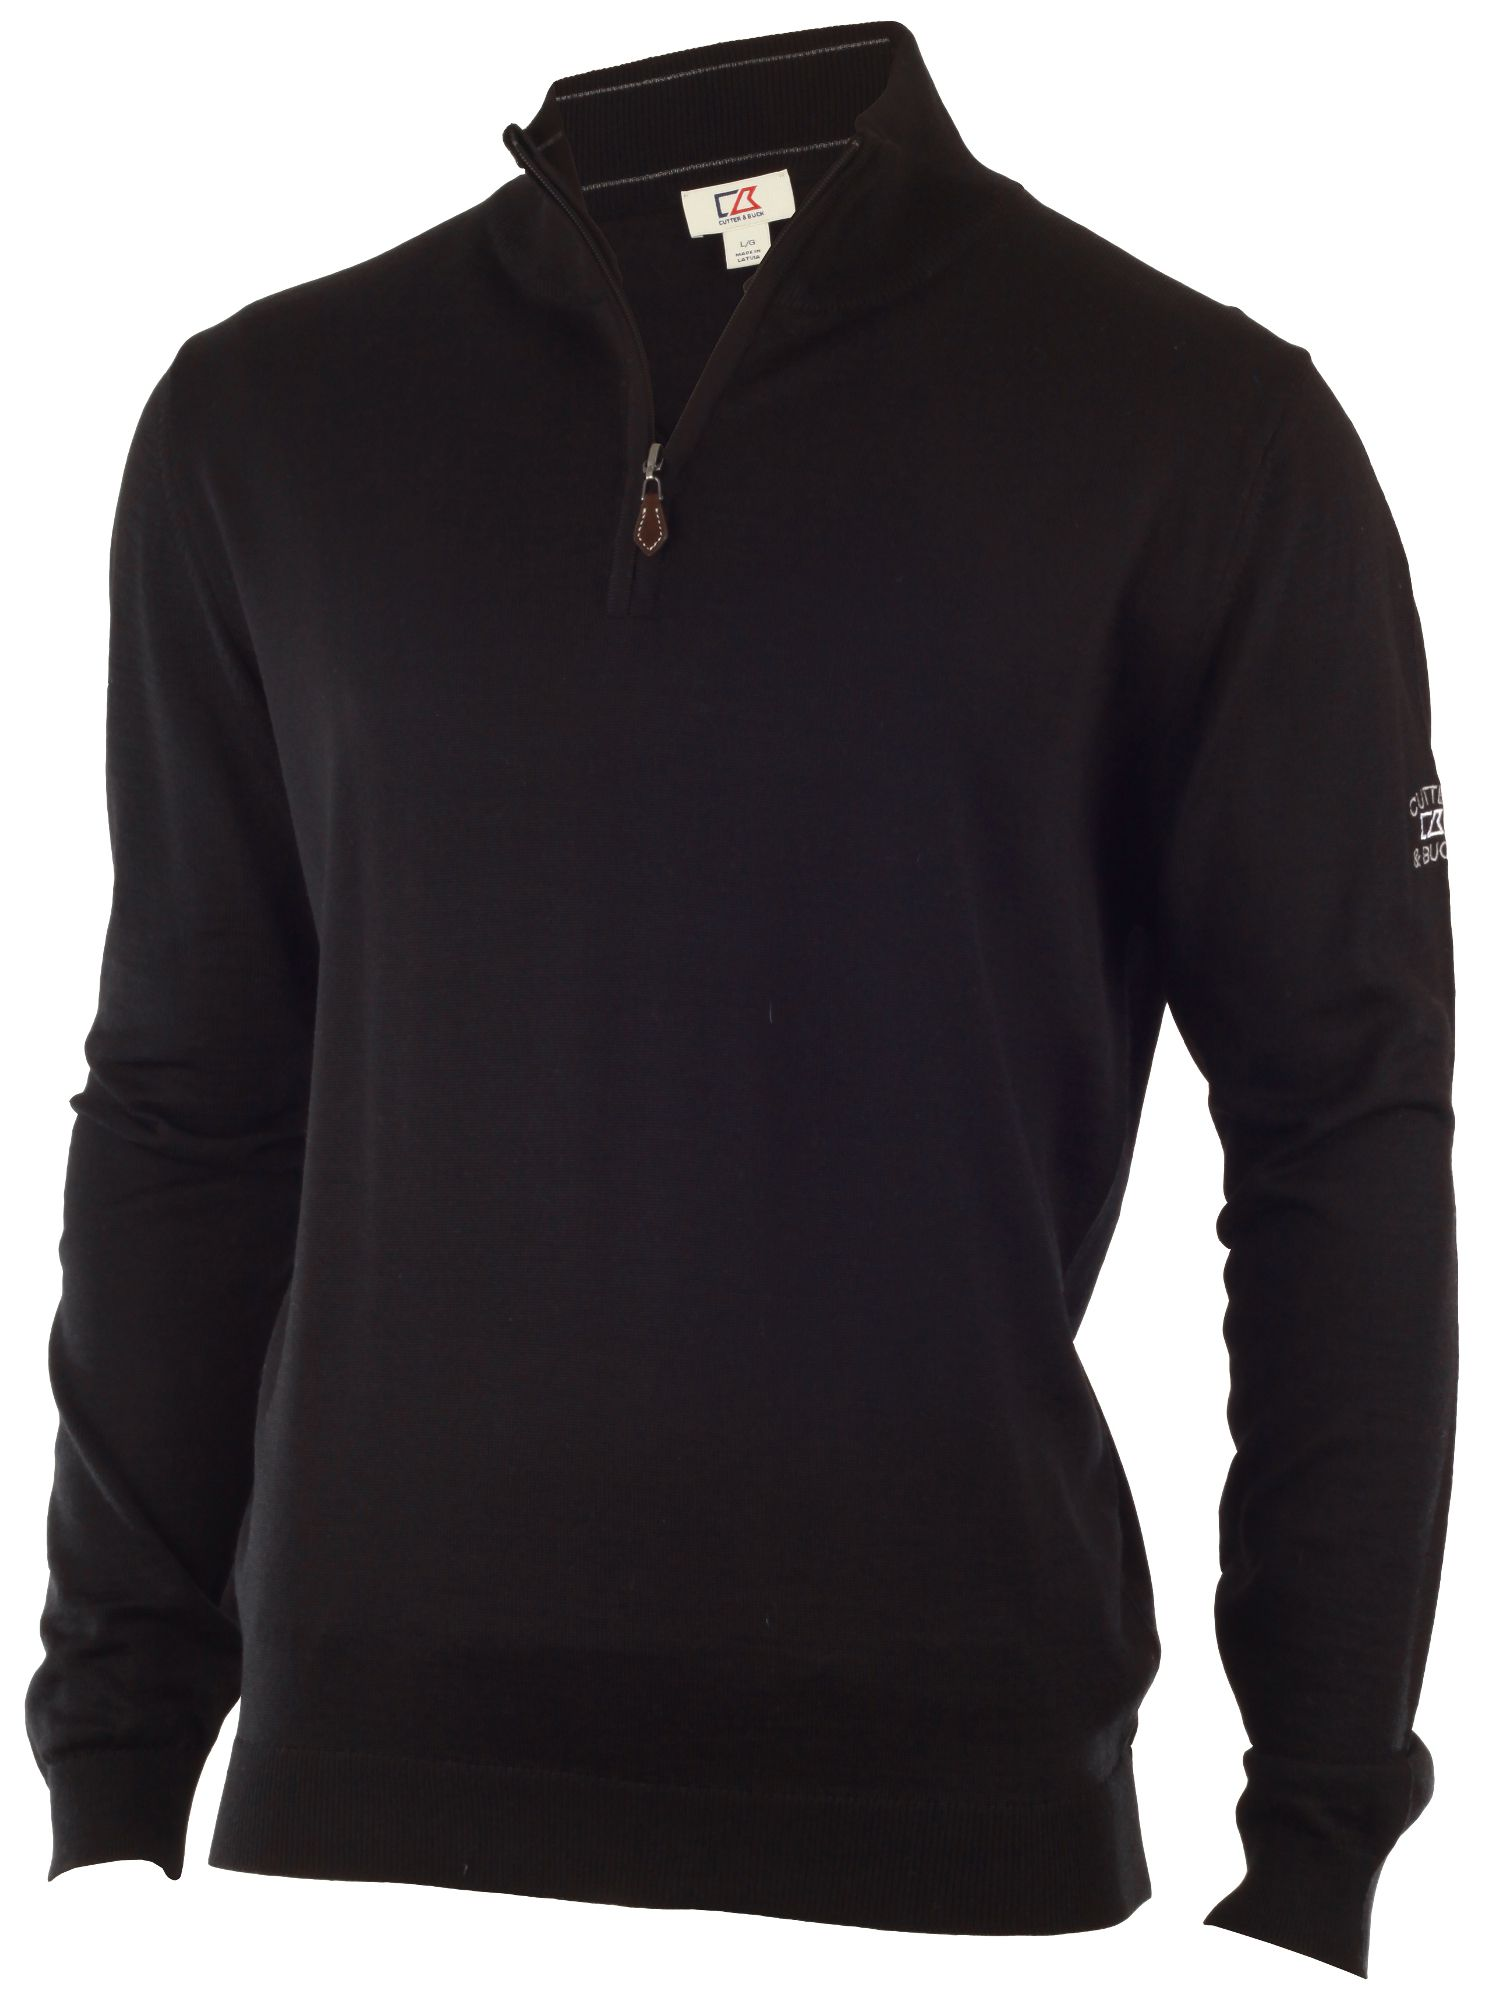 Merino zip neck sweater